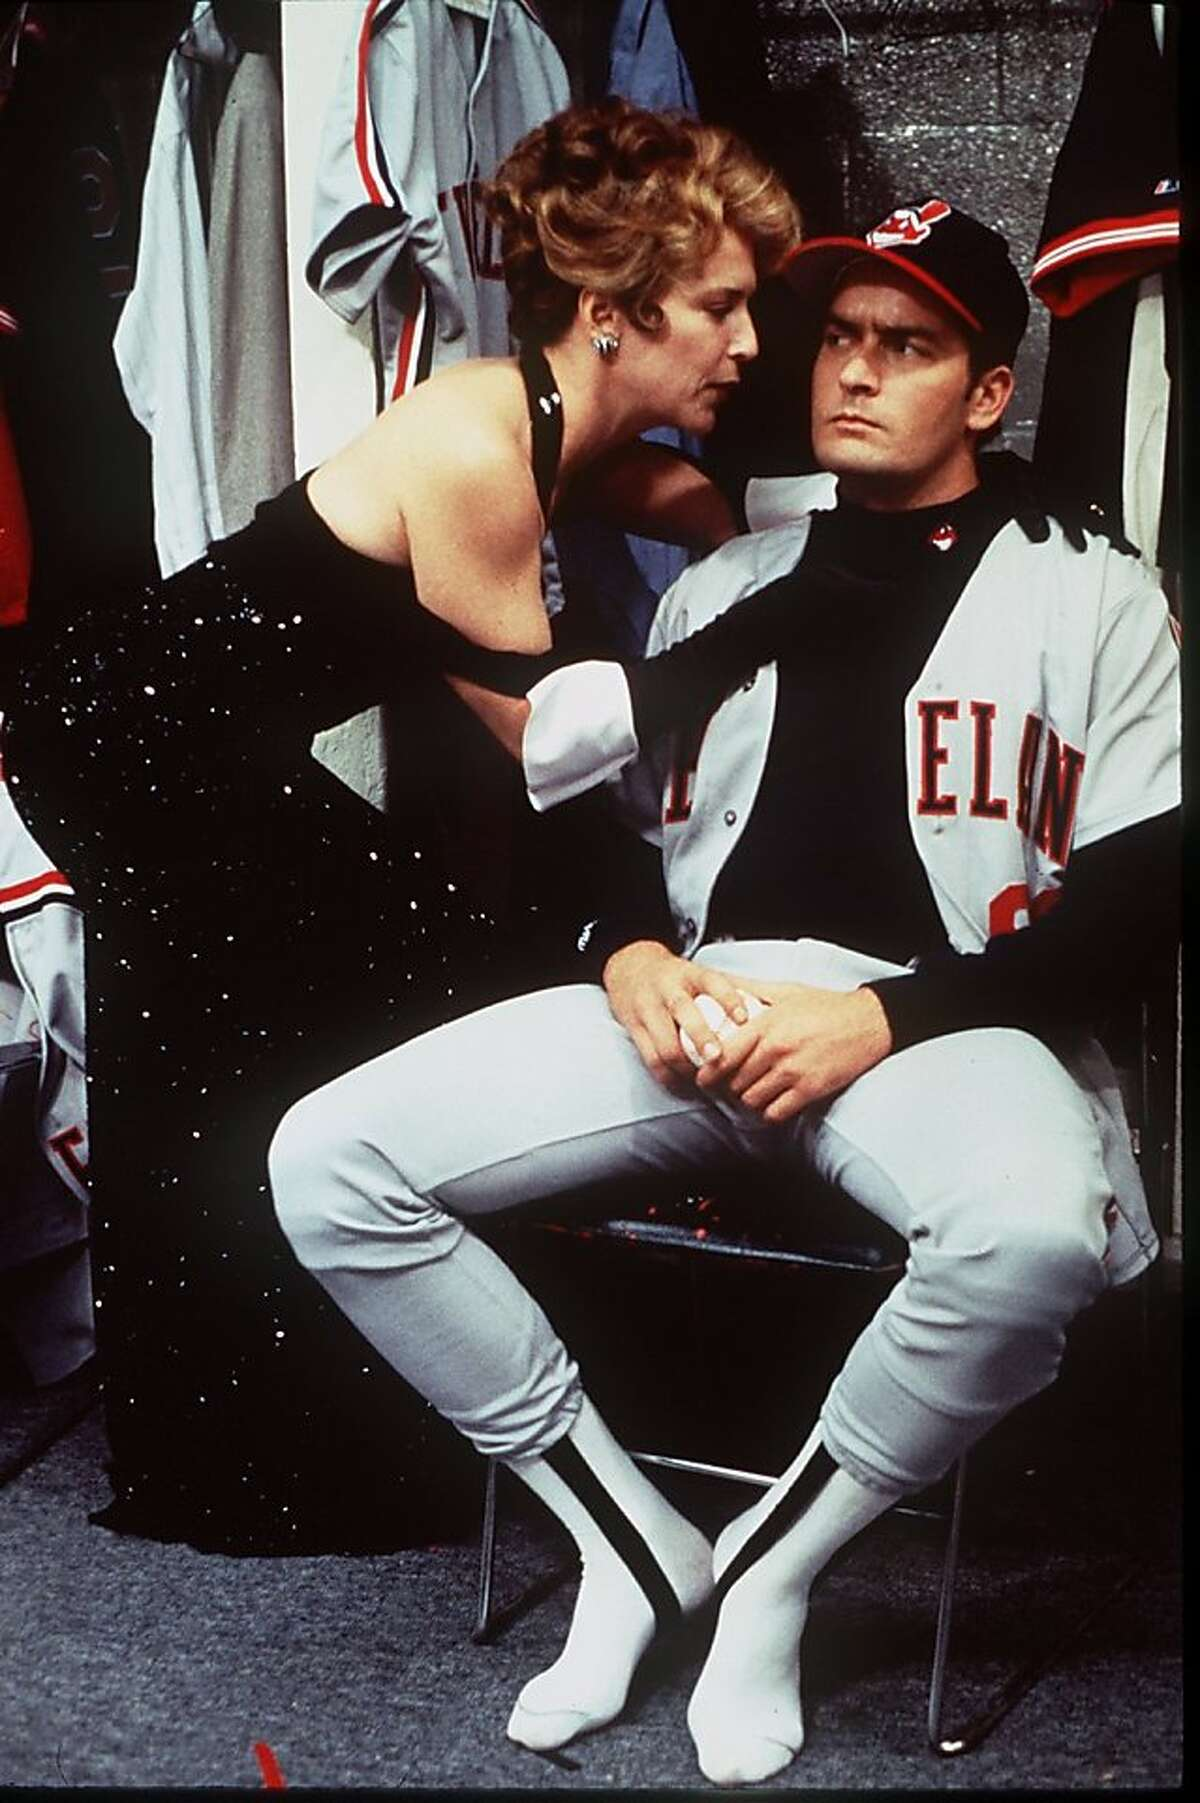 Cleveland Indians team owner Rachel Phelps (Maragaret Whitton) gives her version of a pep talk to pitcher Rick Vaughn (Charlie Sheen) in the 1989 movie